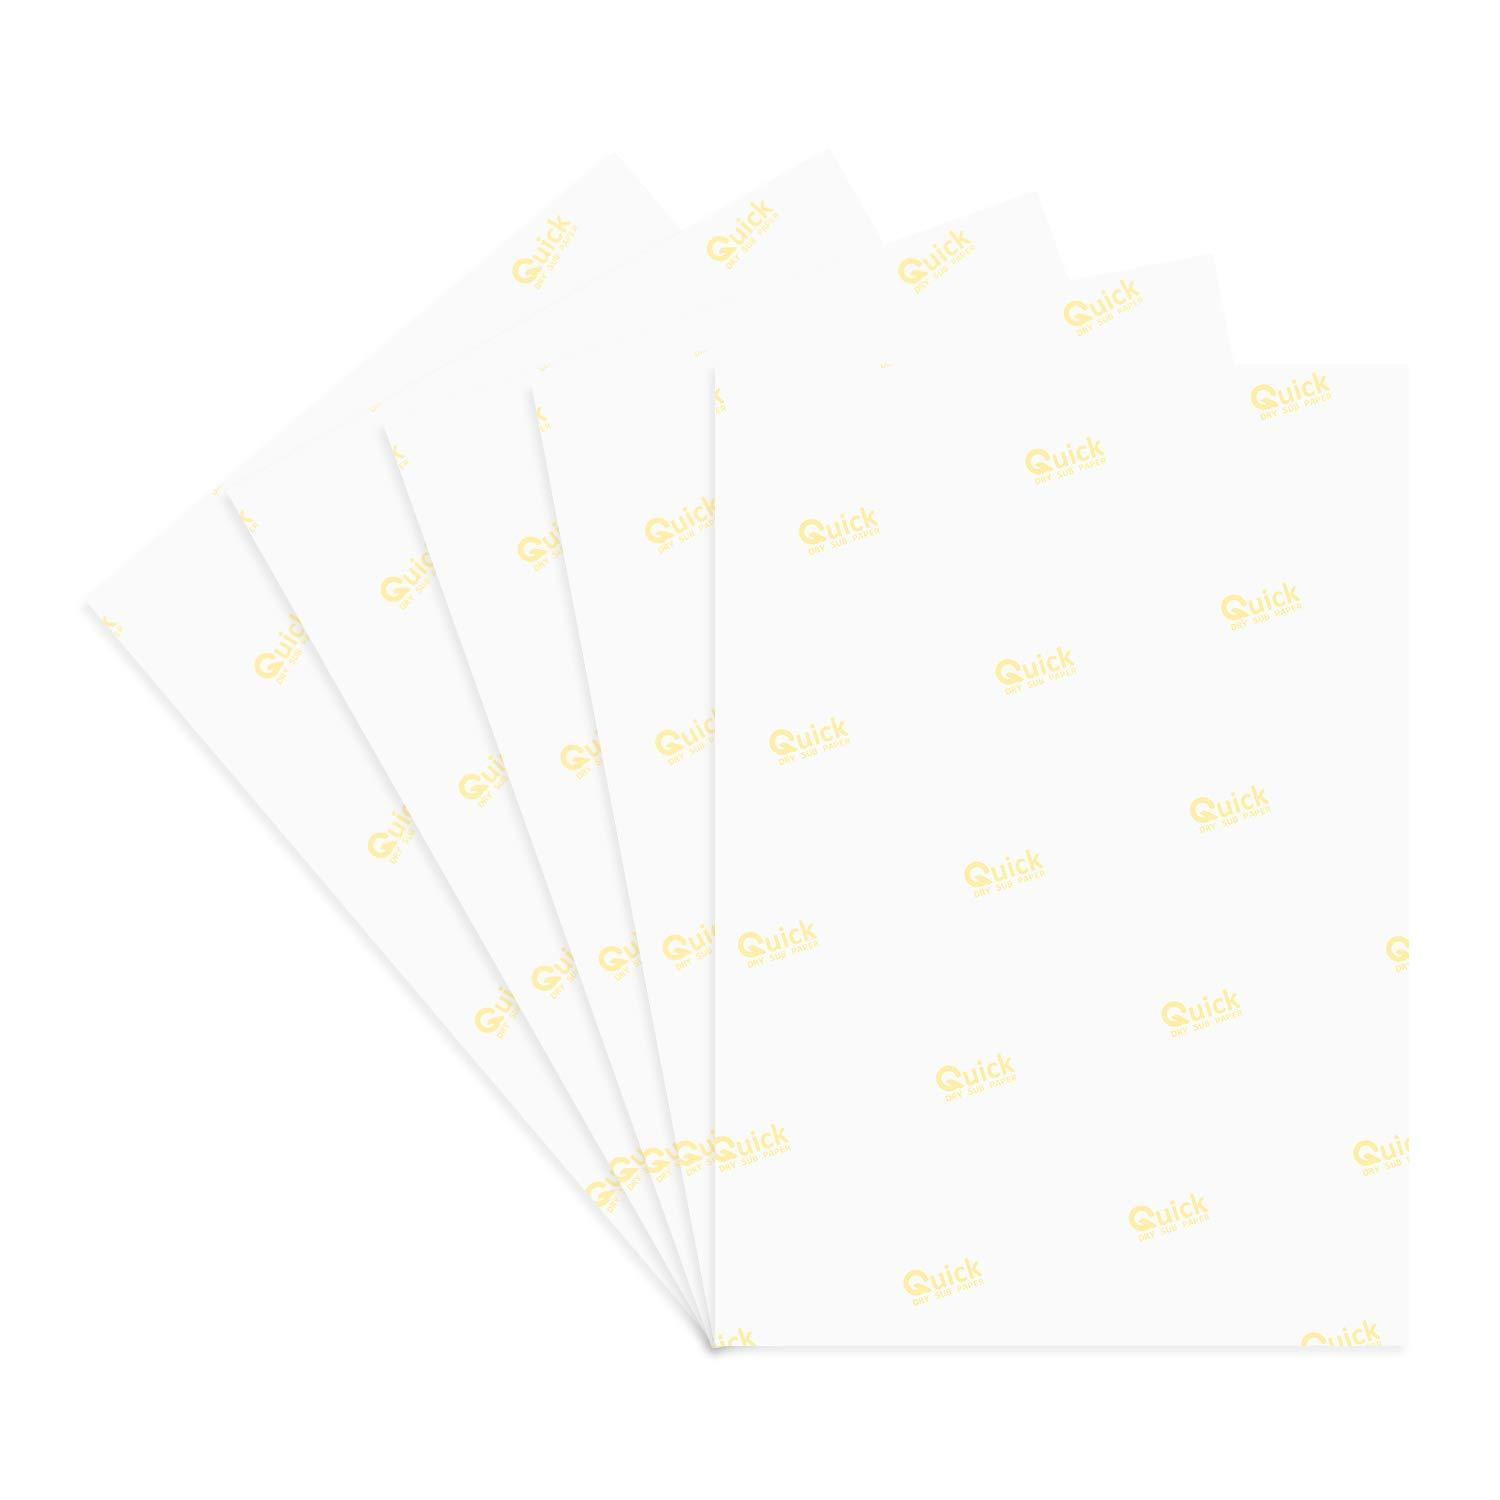 Hemudu Tale Sublimation Paper 110sheets 11x17 Inches Heat Transfer for Inkjet Printer,126gsm